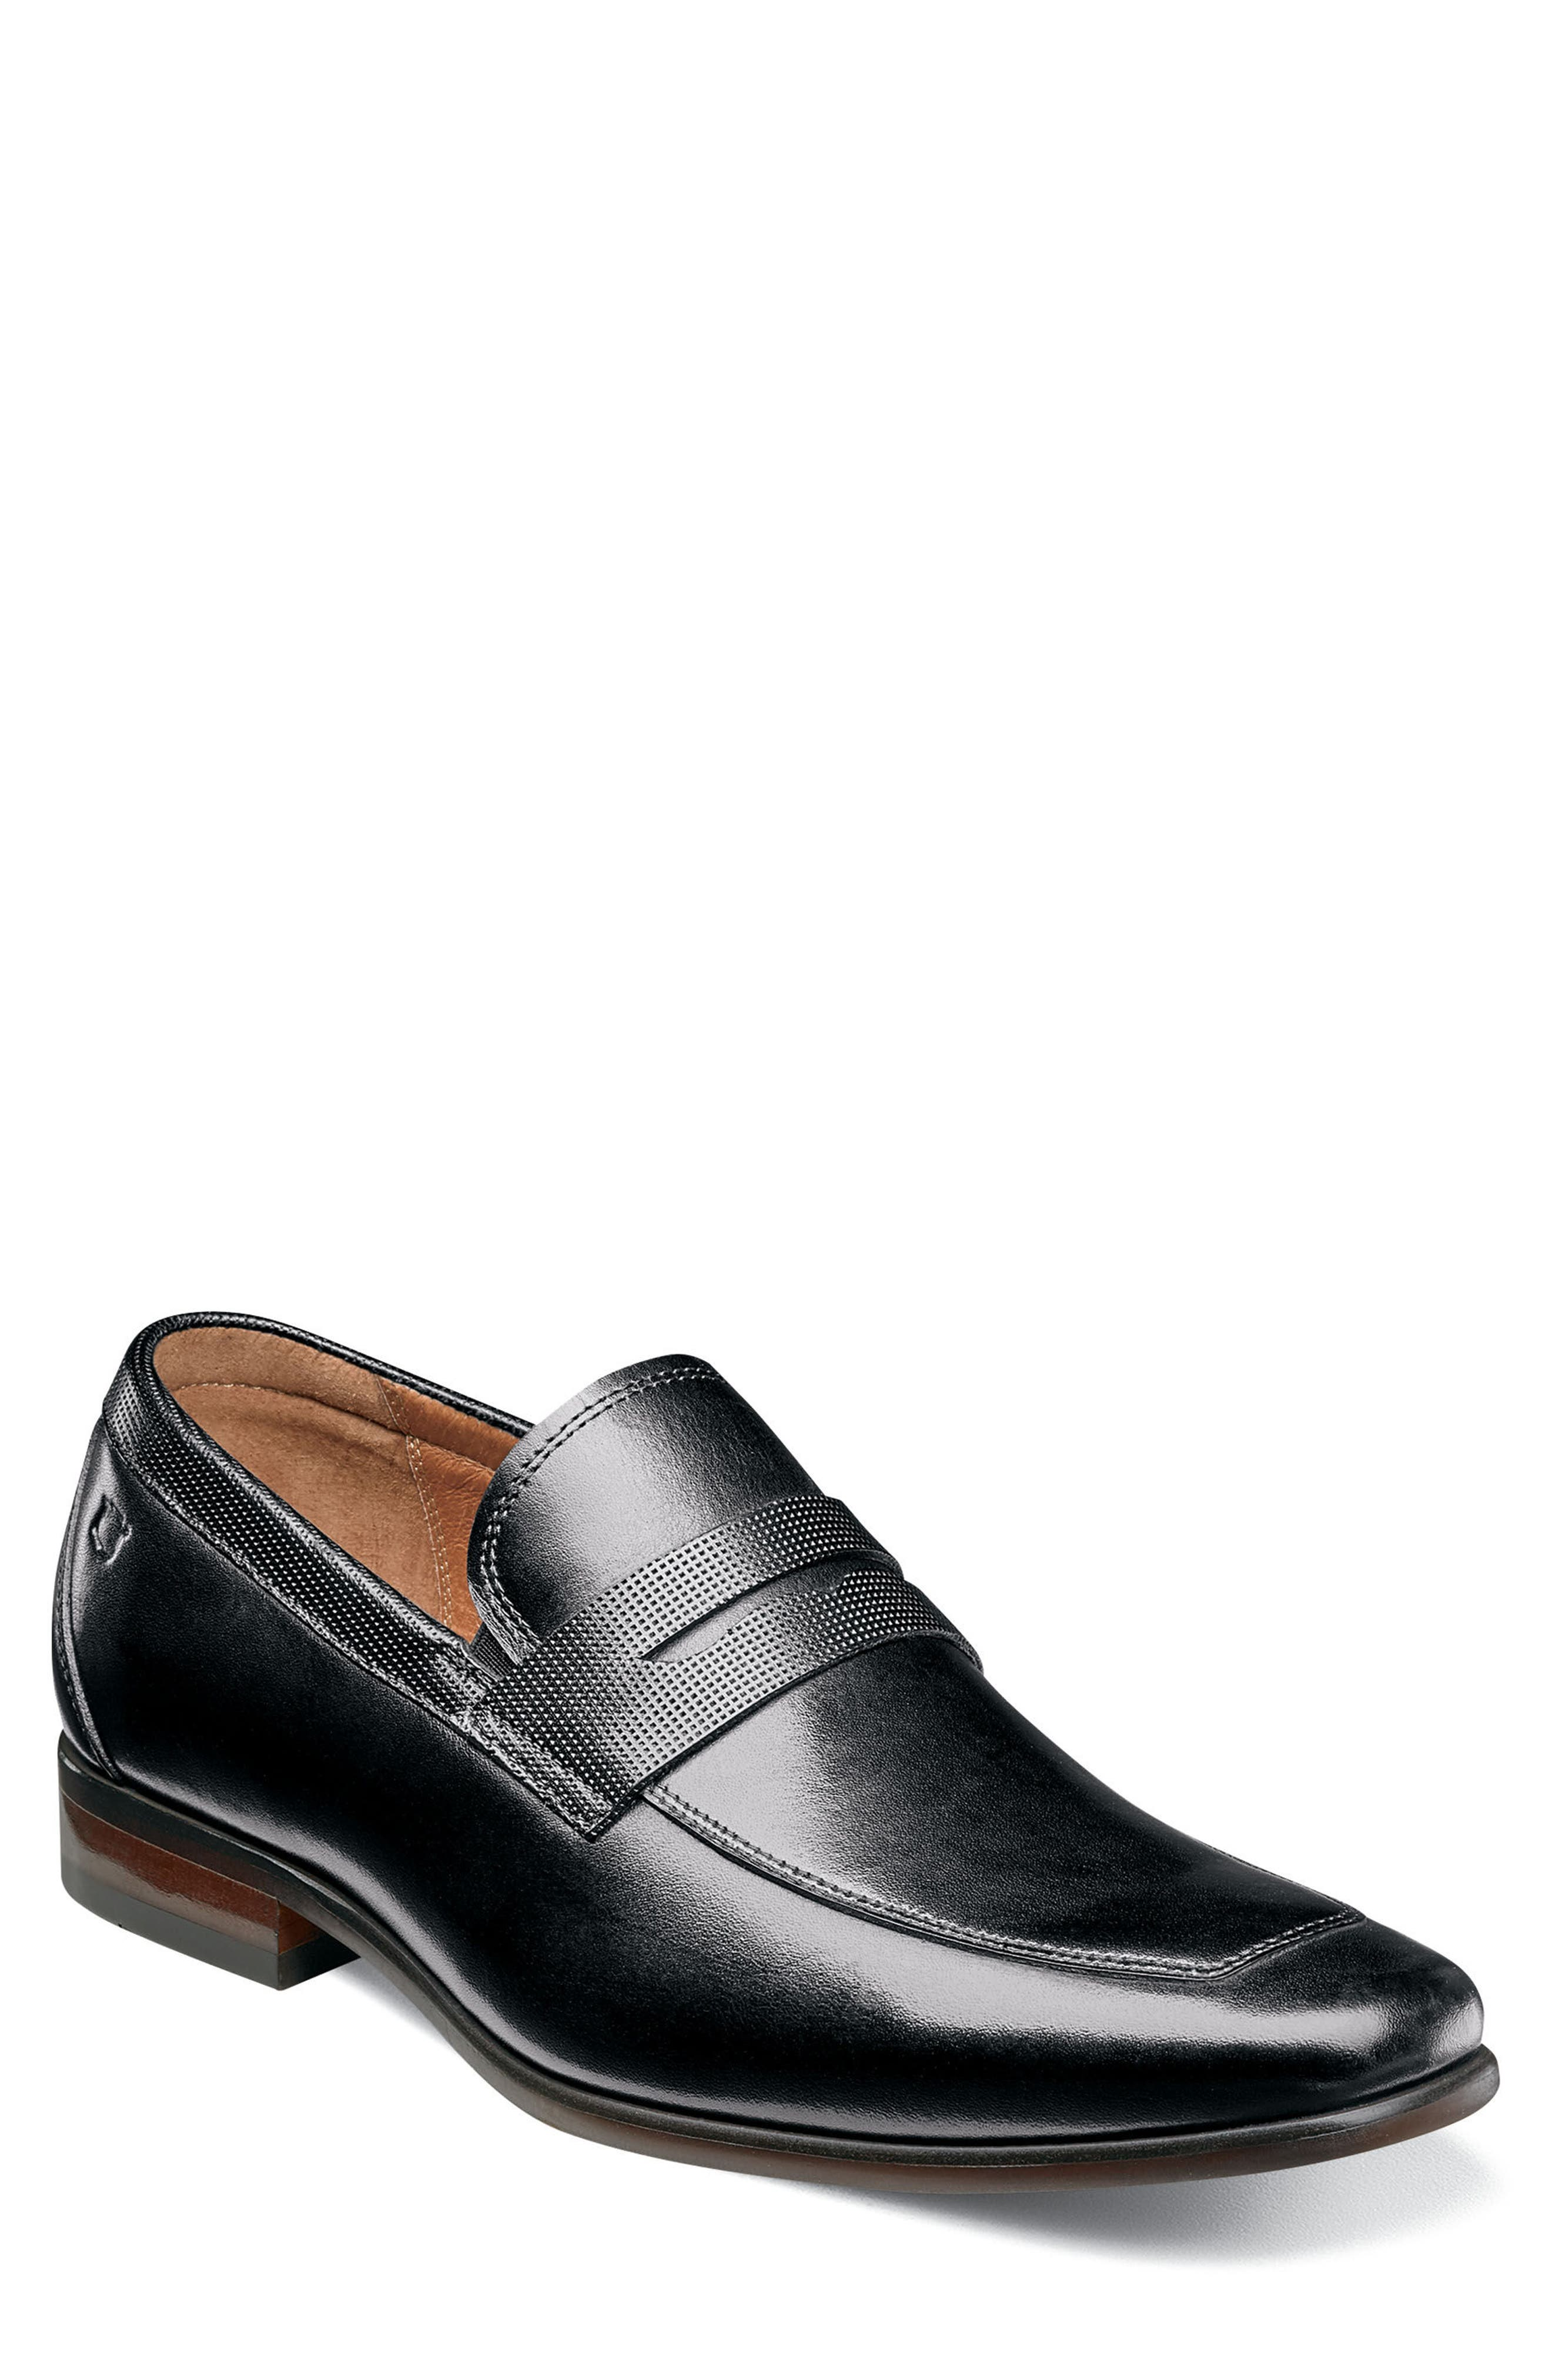 Postino Apron Toe Textured Penny Loafer,                         Main,                         color, Black Leather